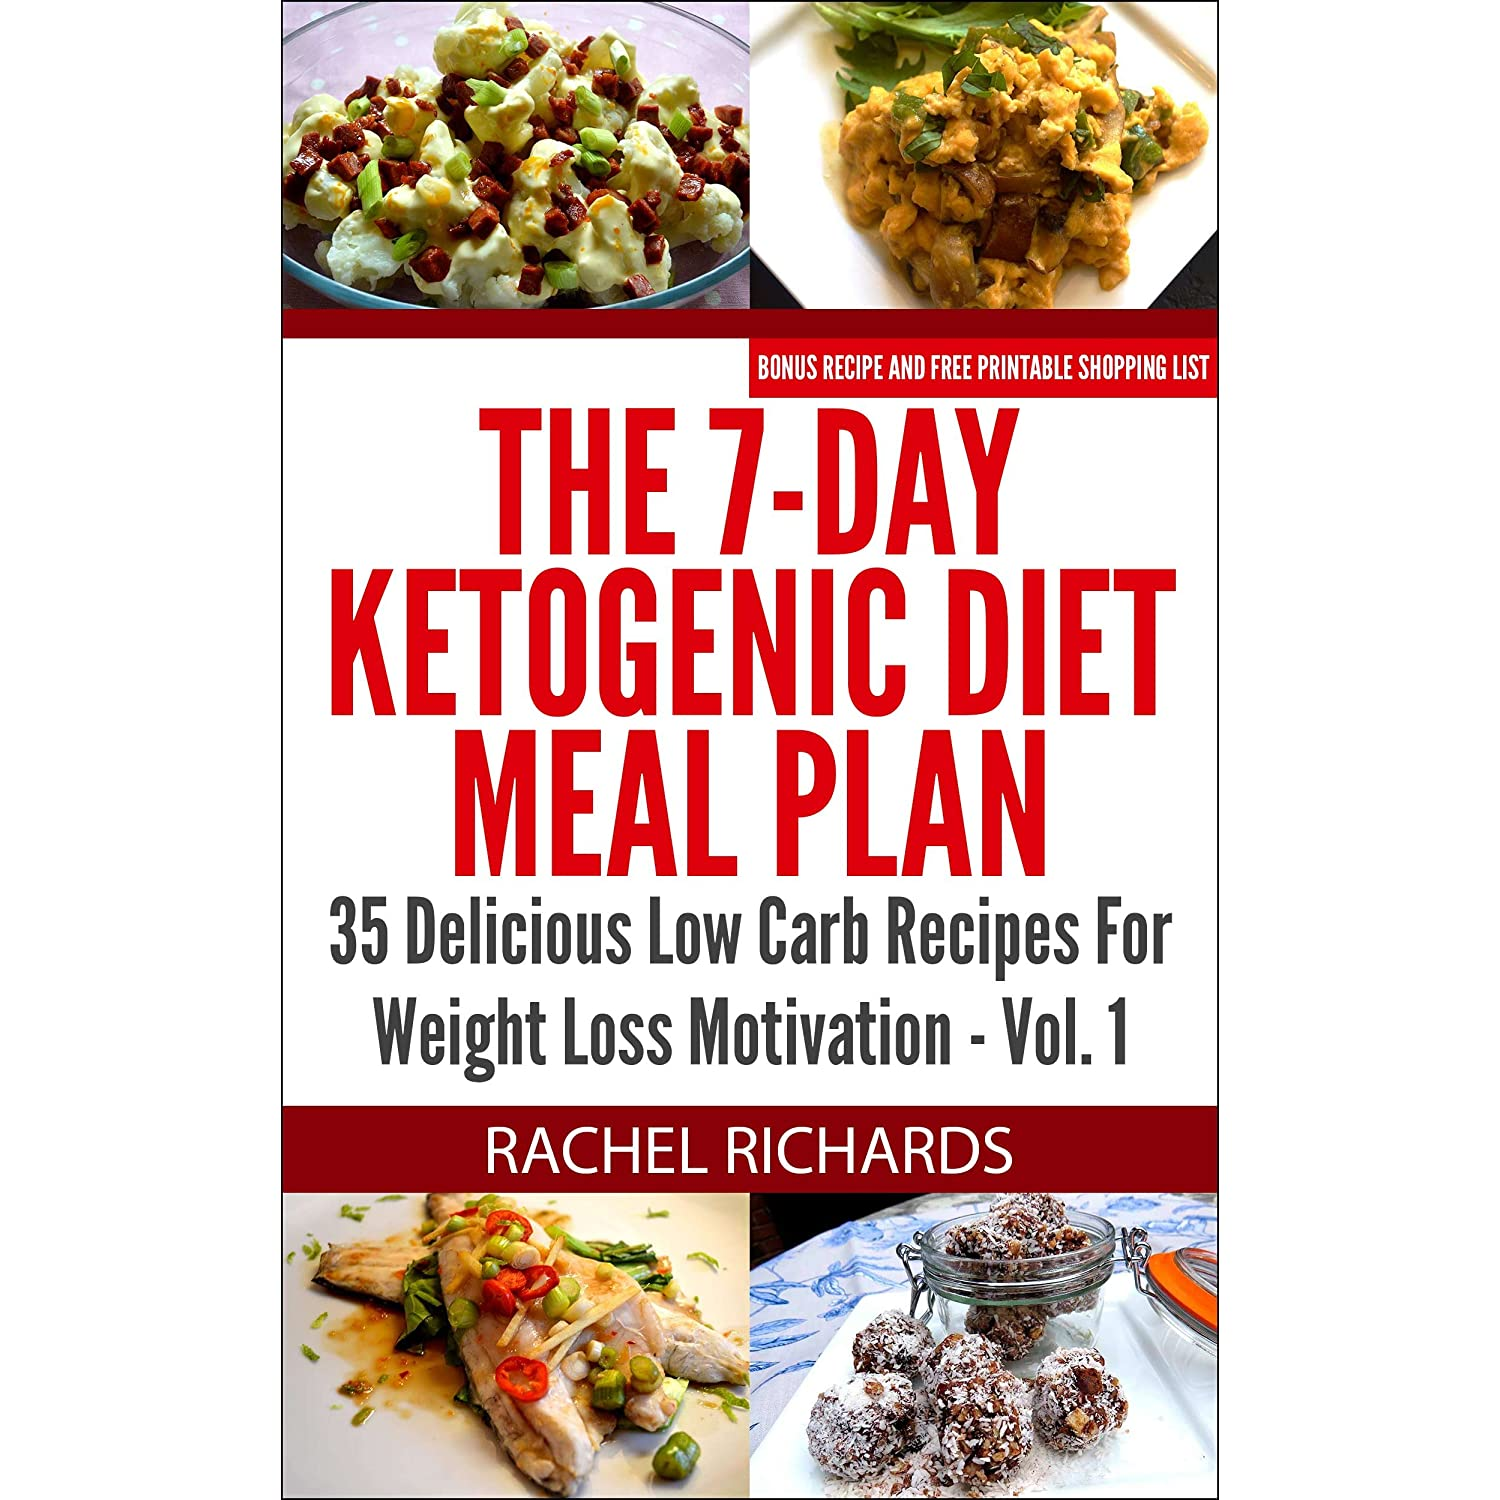 The 7-Day Ketogenic Diet Meal Plan: 35 Delicious Low Carb Recipes For Weight Loss Motivation - Volume 1 / Юриспруденция / Книги